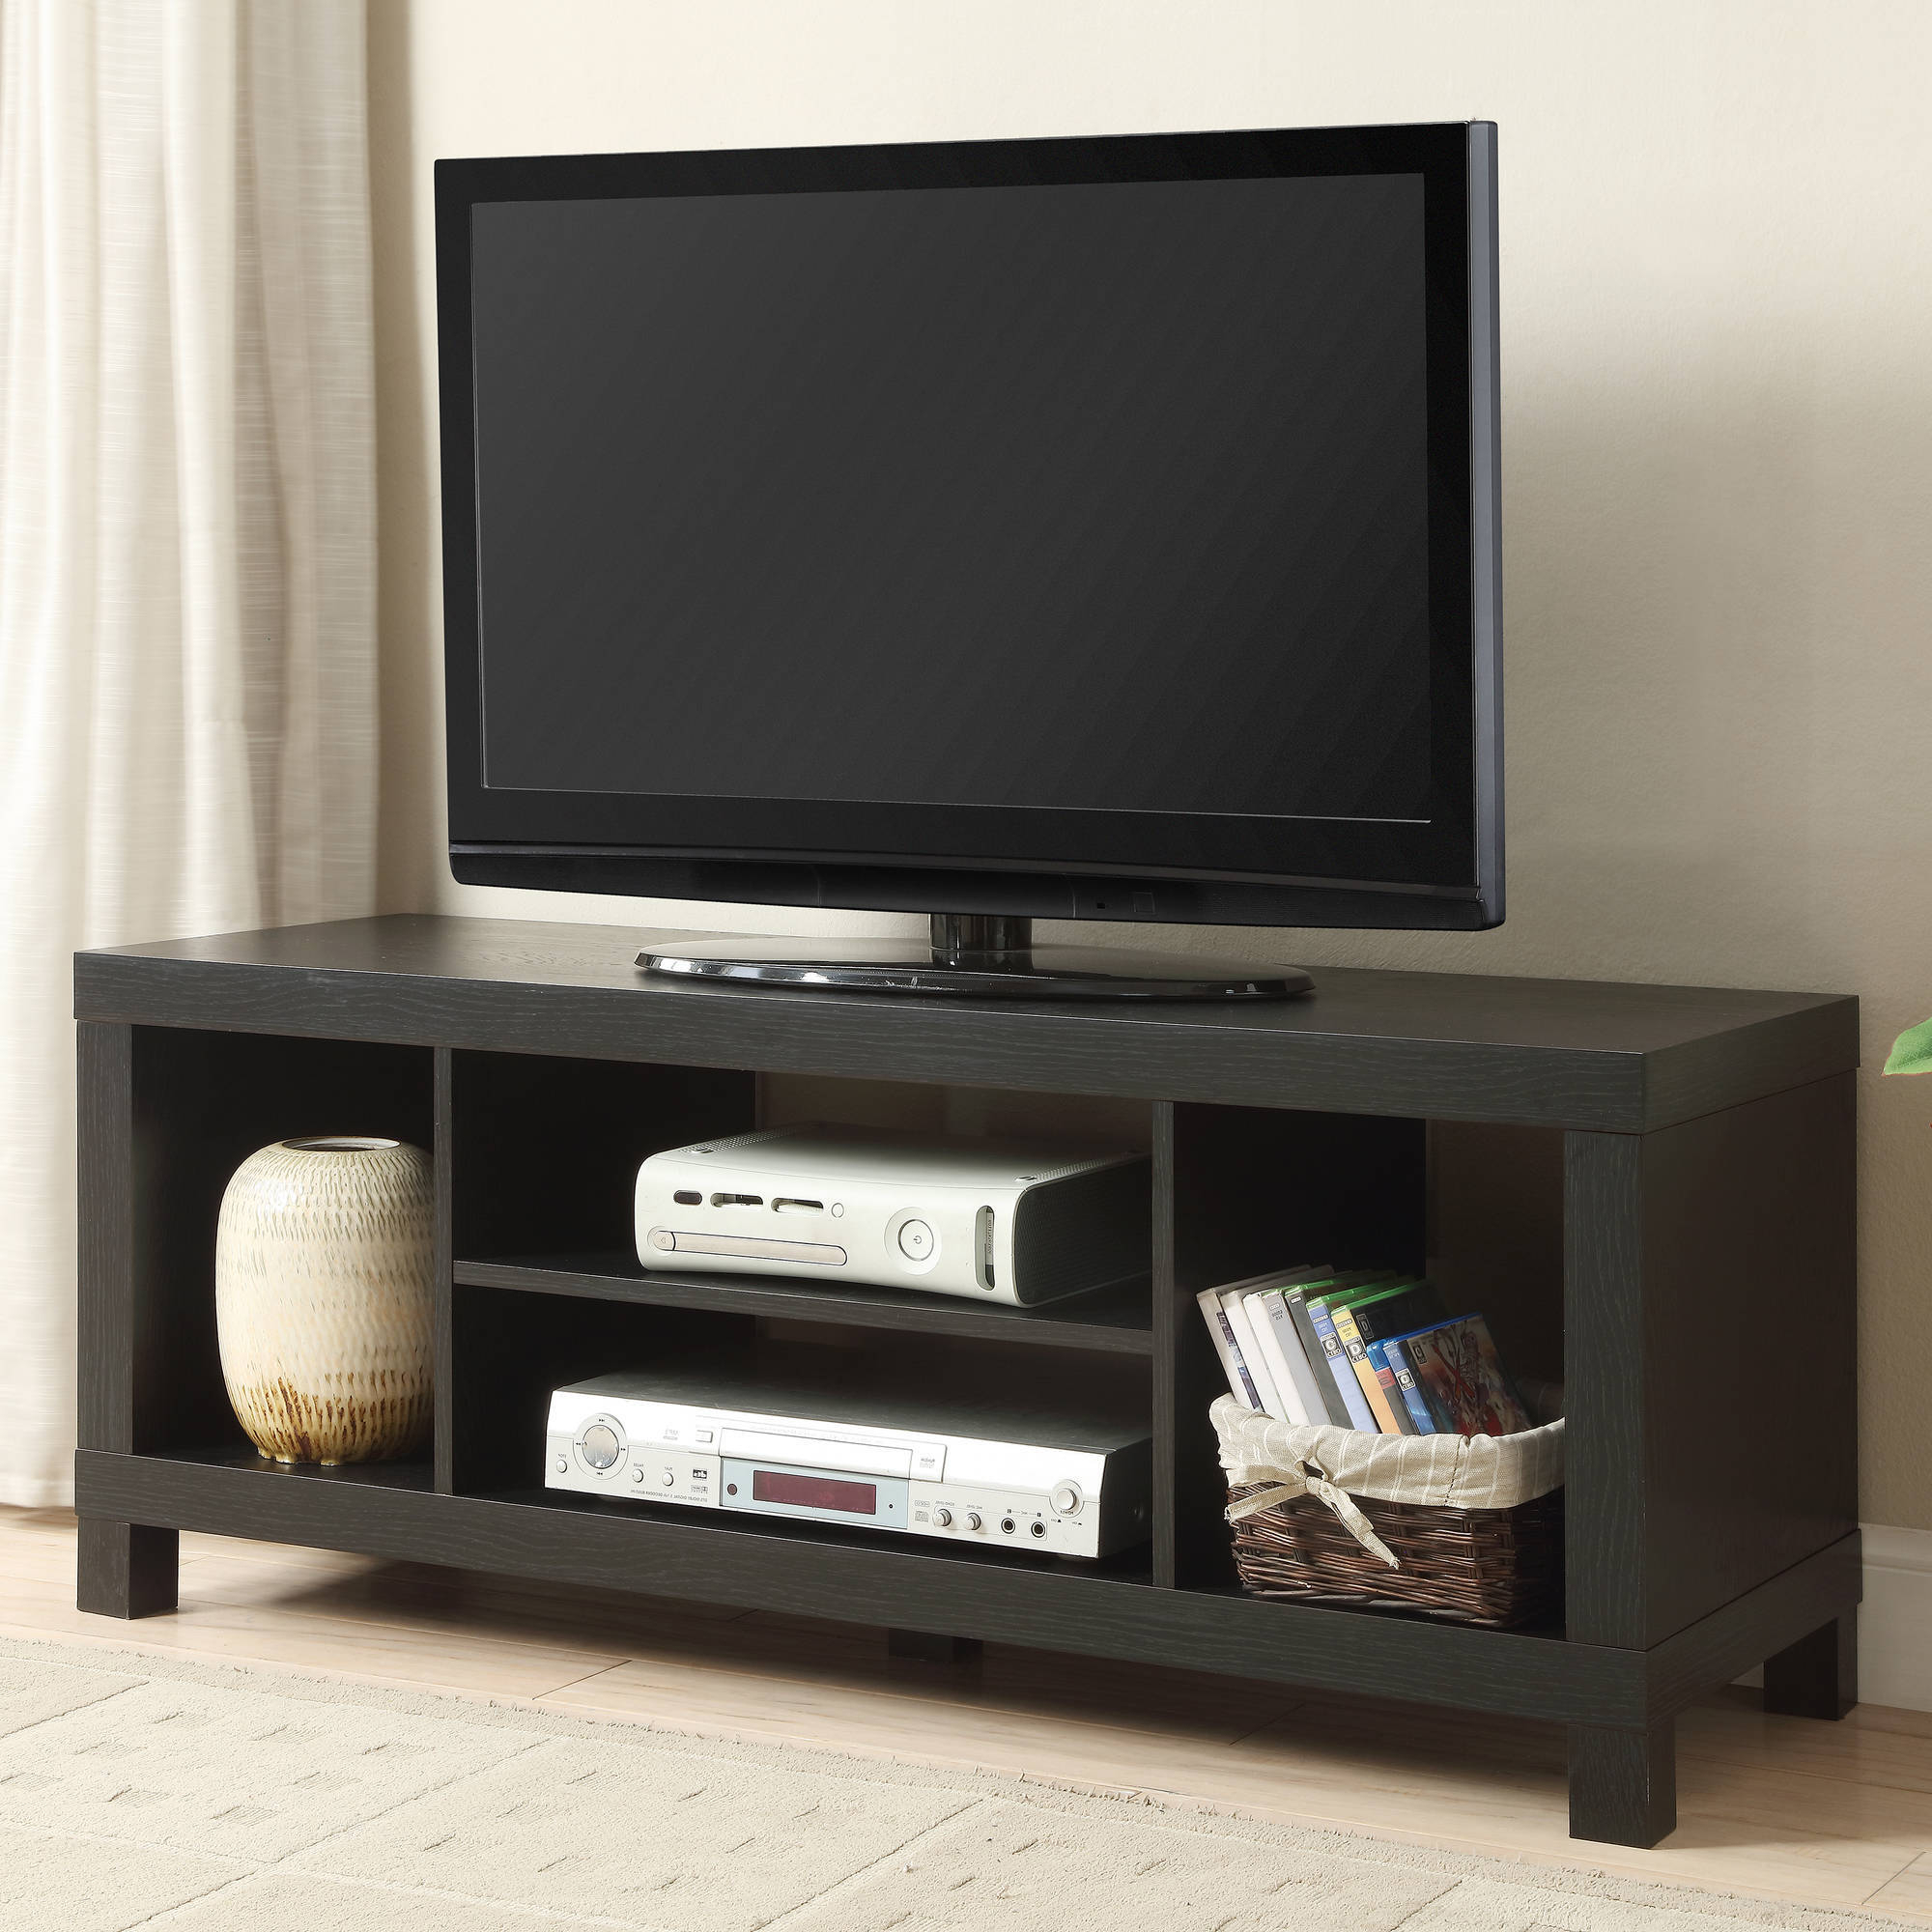 Well Liked Tv Stands Sam's Club 55 Inch Stand Walmart Whalen Costco For Flat With Tv Stands For Tube Tvs (View 6 of 20)